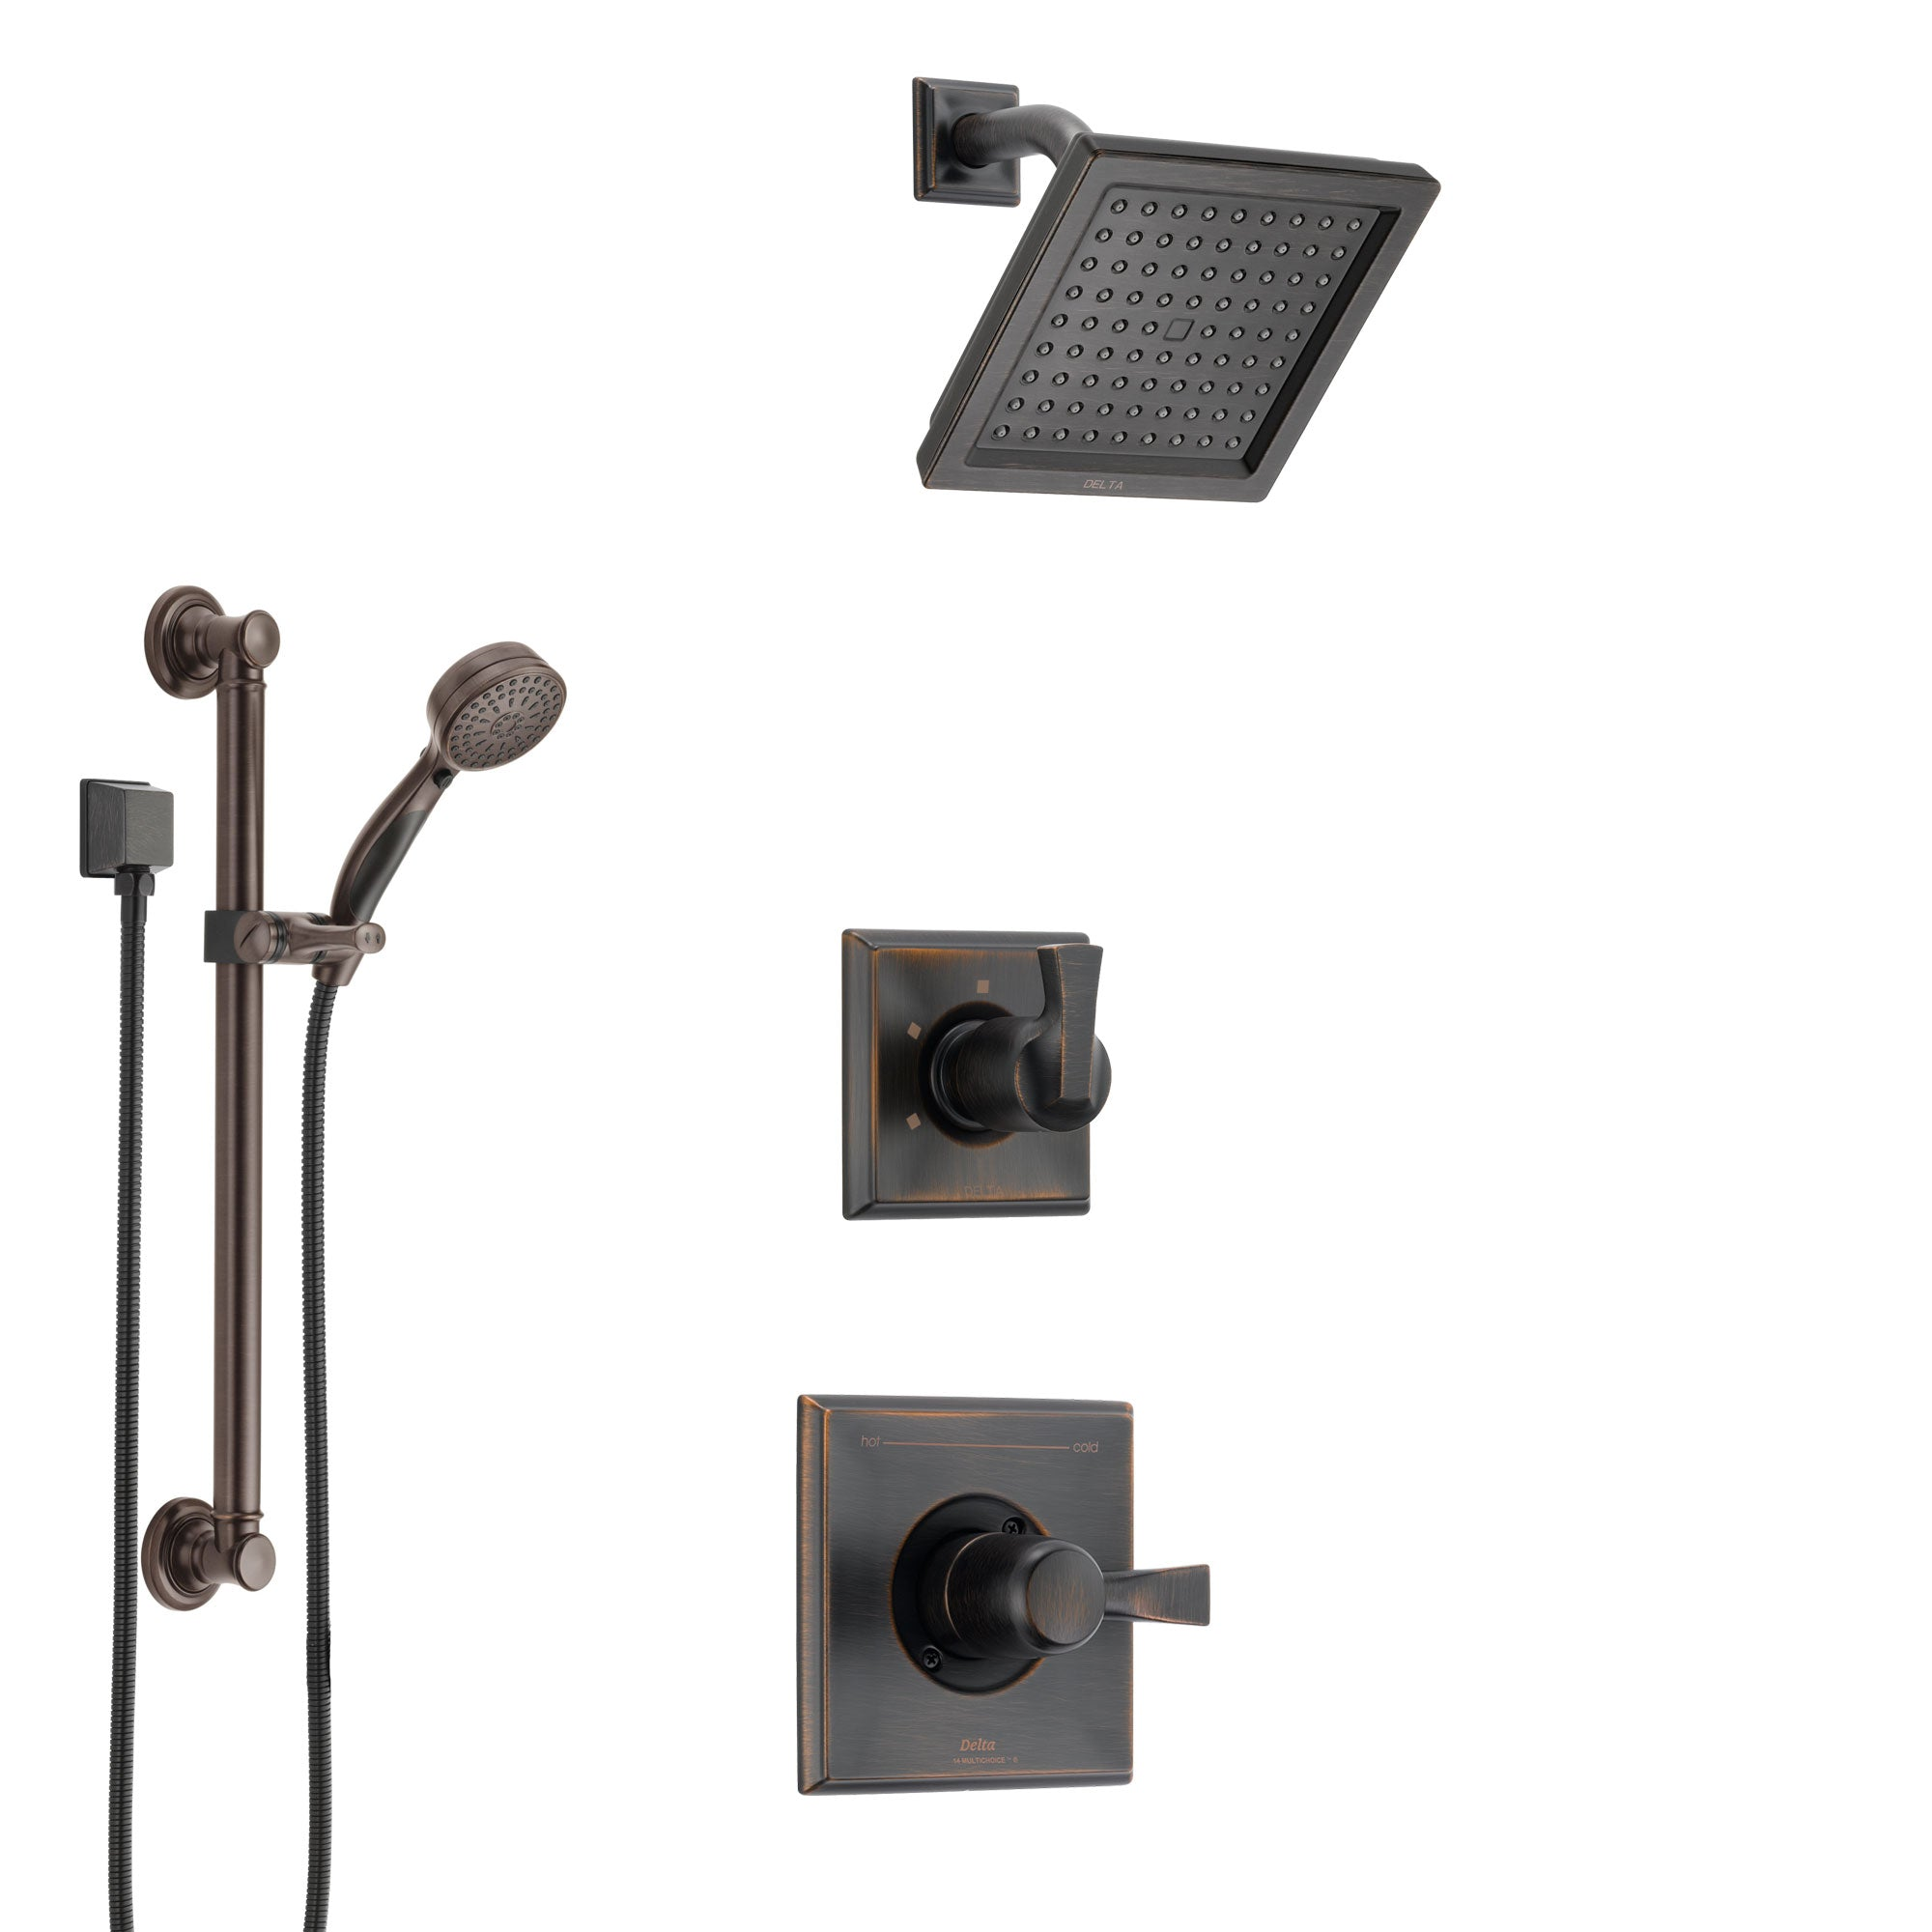 Delta Dryden Venetian Bronze Finish Shower System with Control Handle, 3-Setting Diverter, Showerhead, and Hand Shower with Grab Bar SS1451RB3